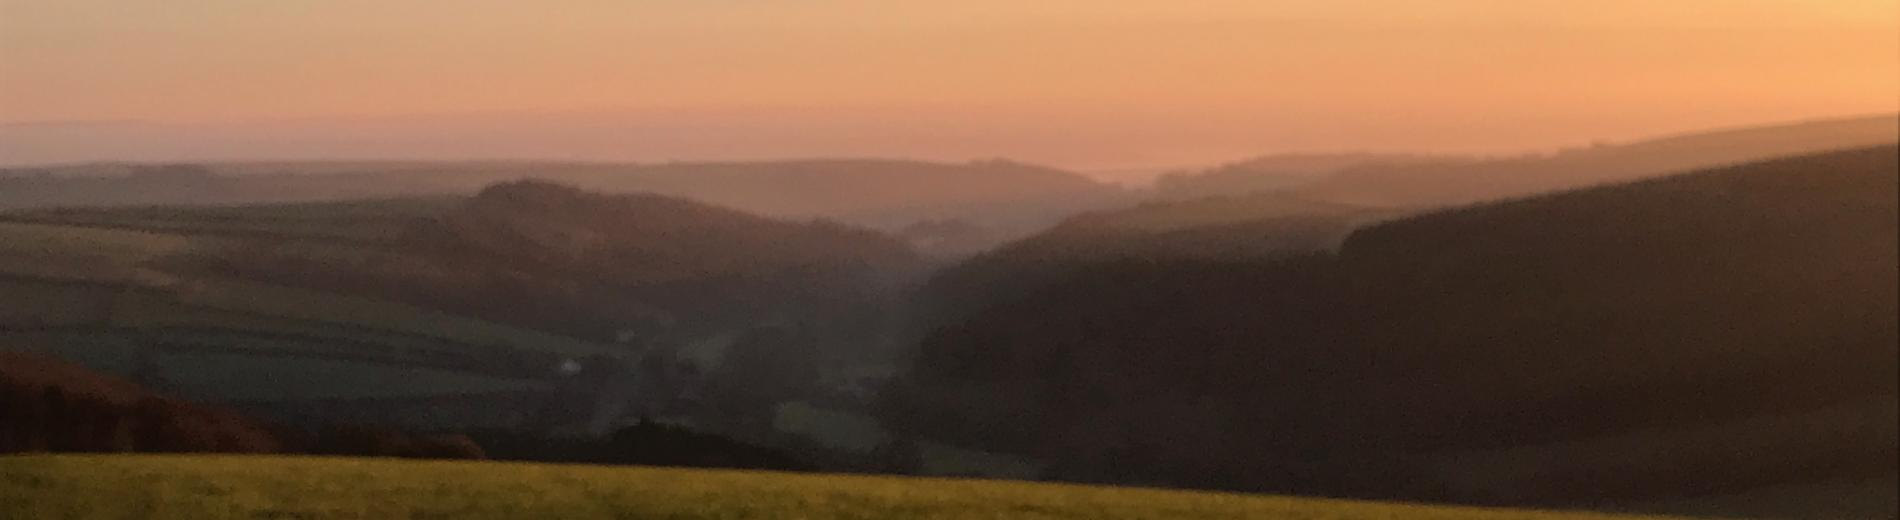 View looking over the hills of Spreacombe at sunset